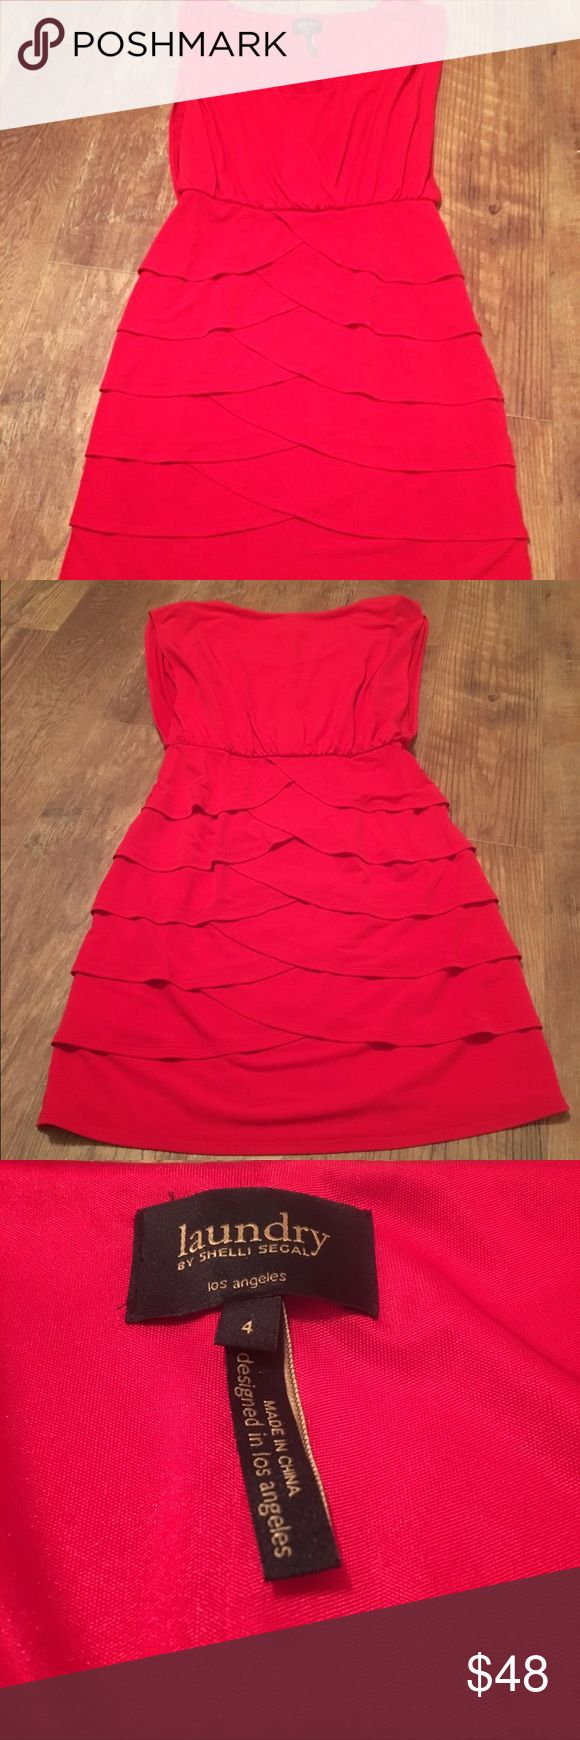 ✨ Red Laundry by Shelli Segal Dress ❤️ ✨ PERFECT for Valentines Day - Red Laundry by Shelli Segal Dress Size 4 Laundry by Shelli Segal Dresses